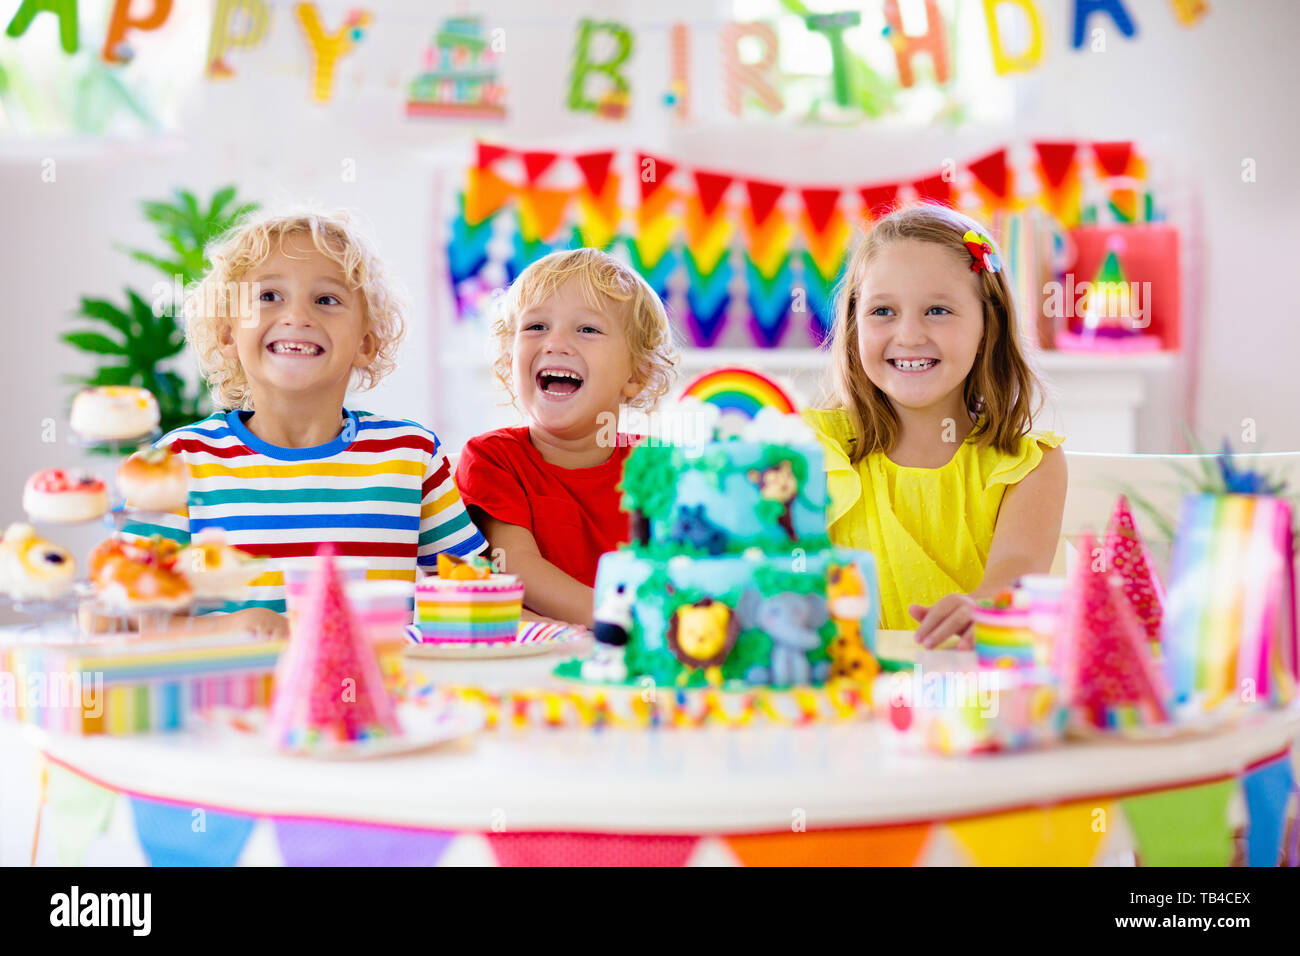 Astonishing Kids Birthday Party Child Blowing Candles On Cake And Opening Personalised Birthday Cards Sponlily Jamesorg